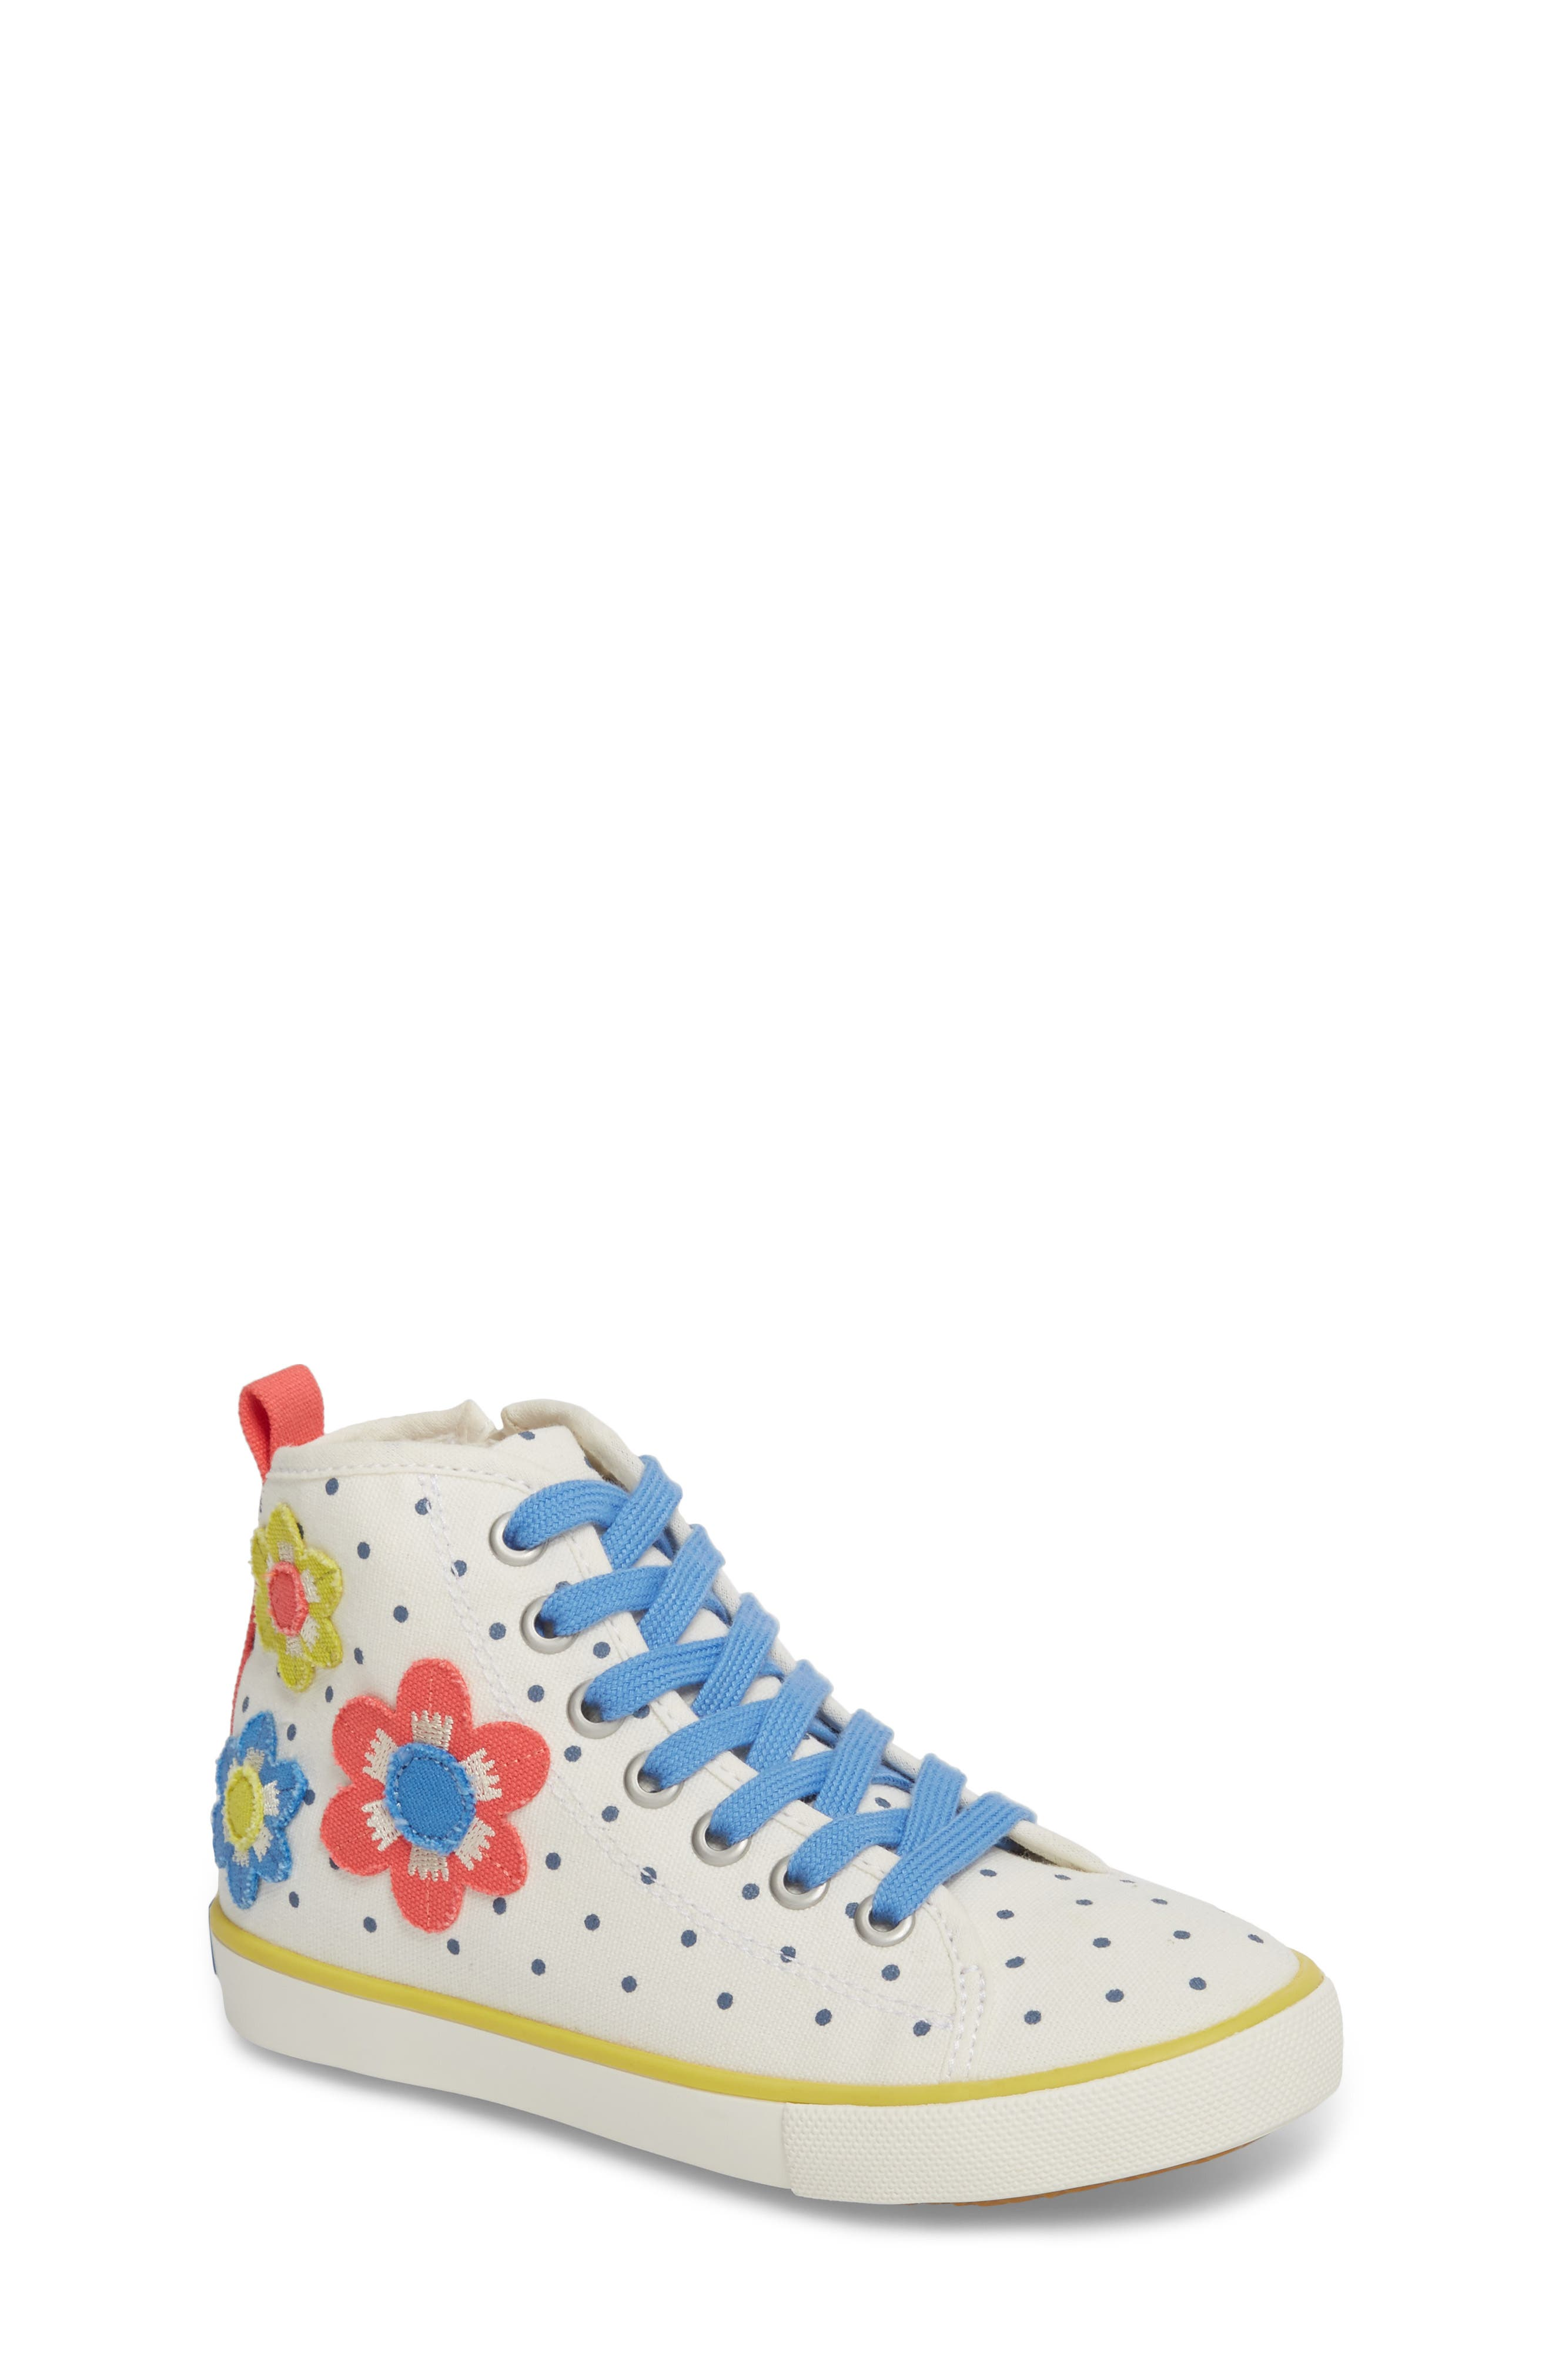 Appliqué High Top Sneaker,                             Main thumbnail 1, color,                             Ecru Flowers